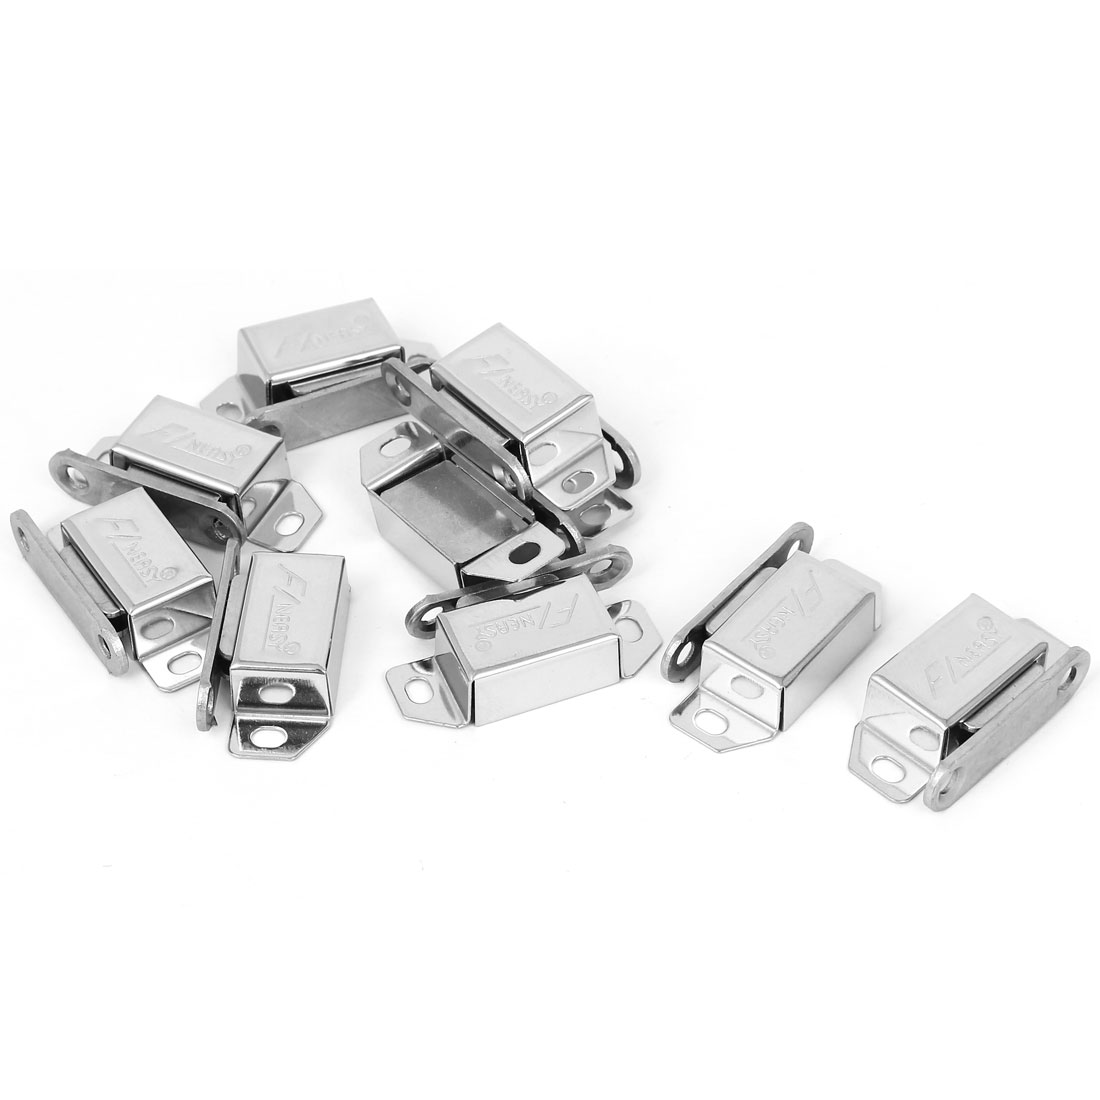 Furniture Fitting Door Magnetic Catch Stopper Holder Latch 10pcs